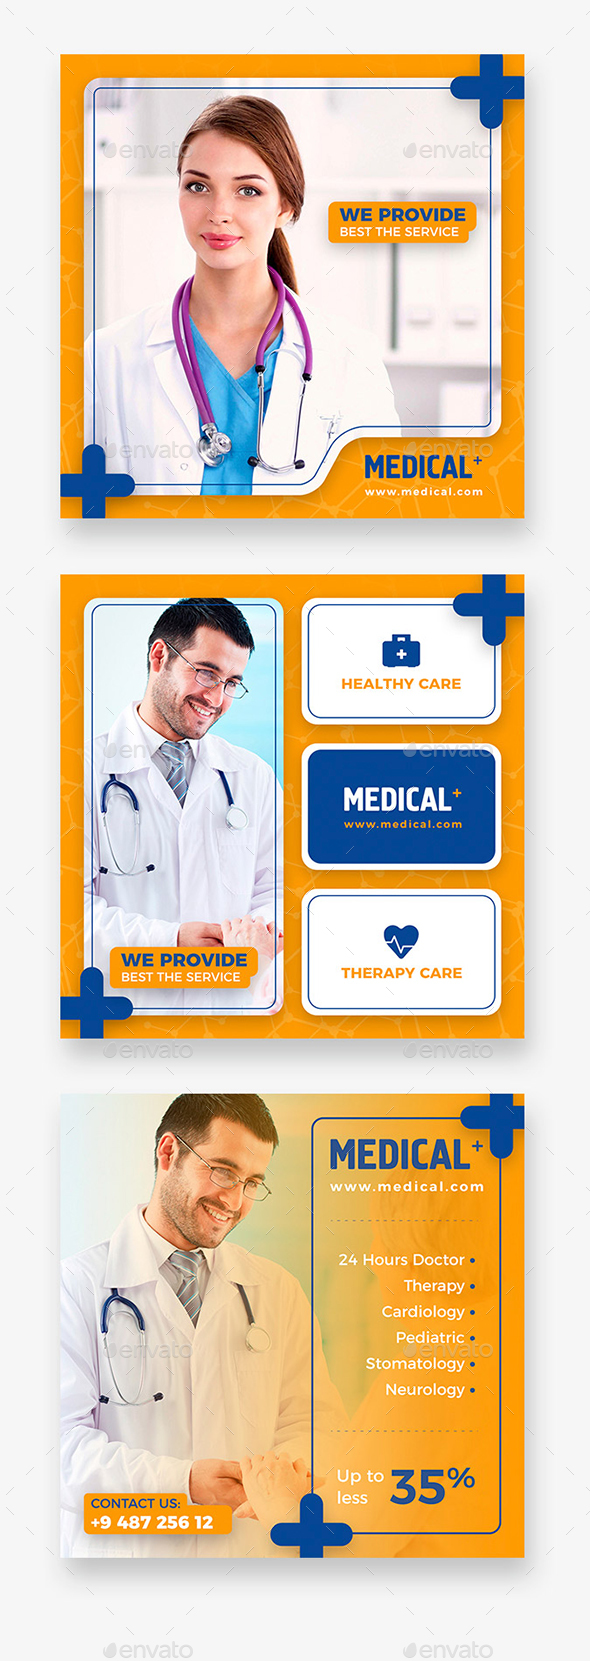 Medical Instagram Banner - Social Media Web Elements